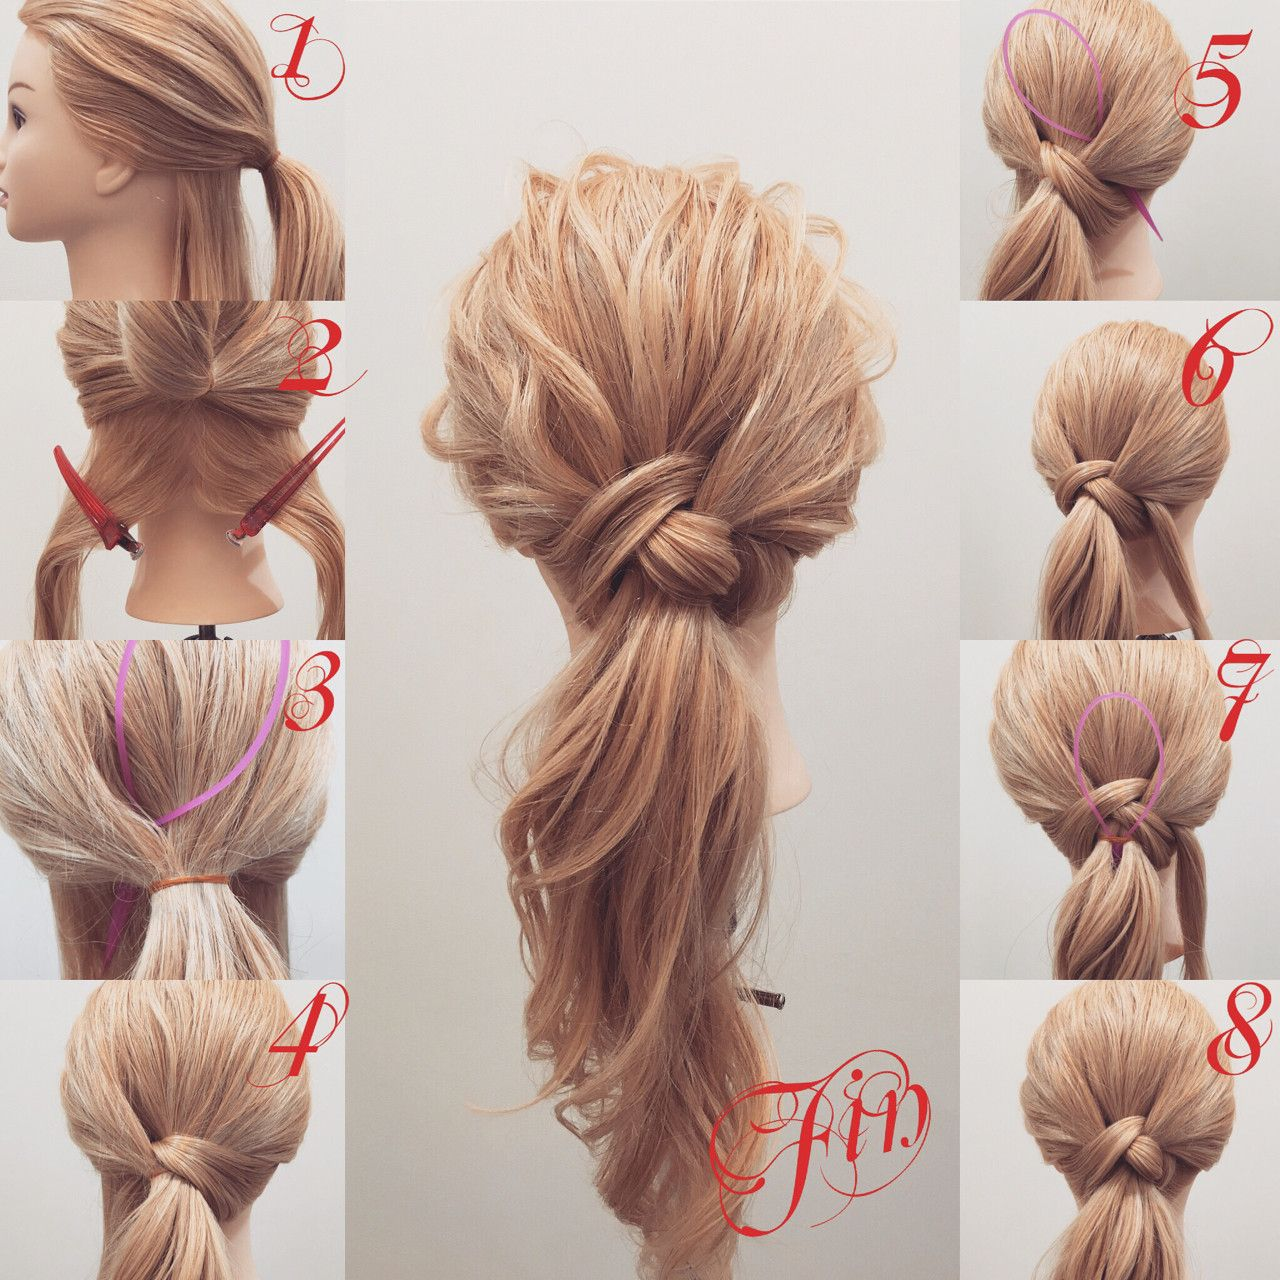 Pin by julia corsi on hair pinterest hair style makeup and hair